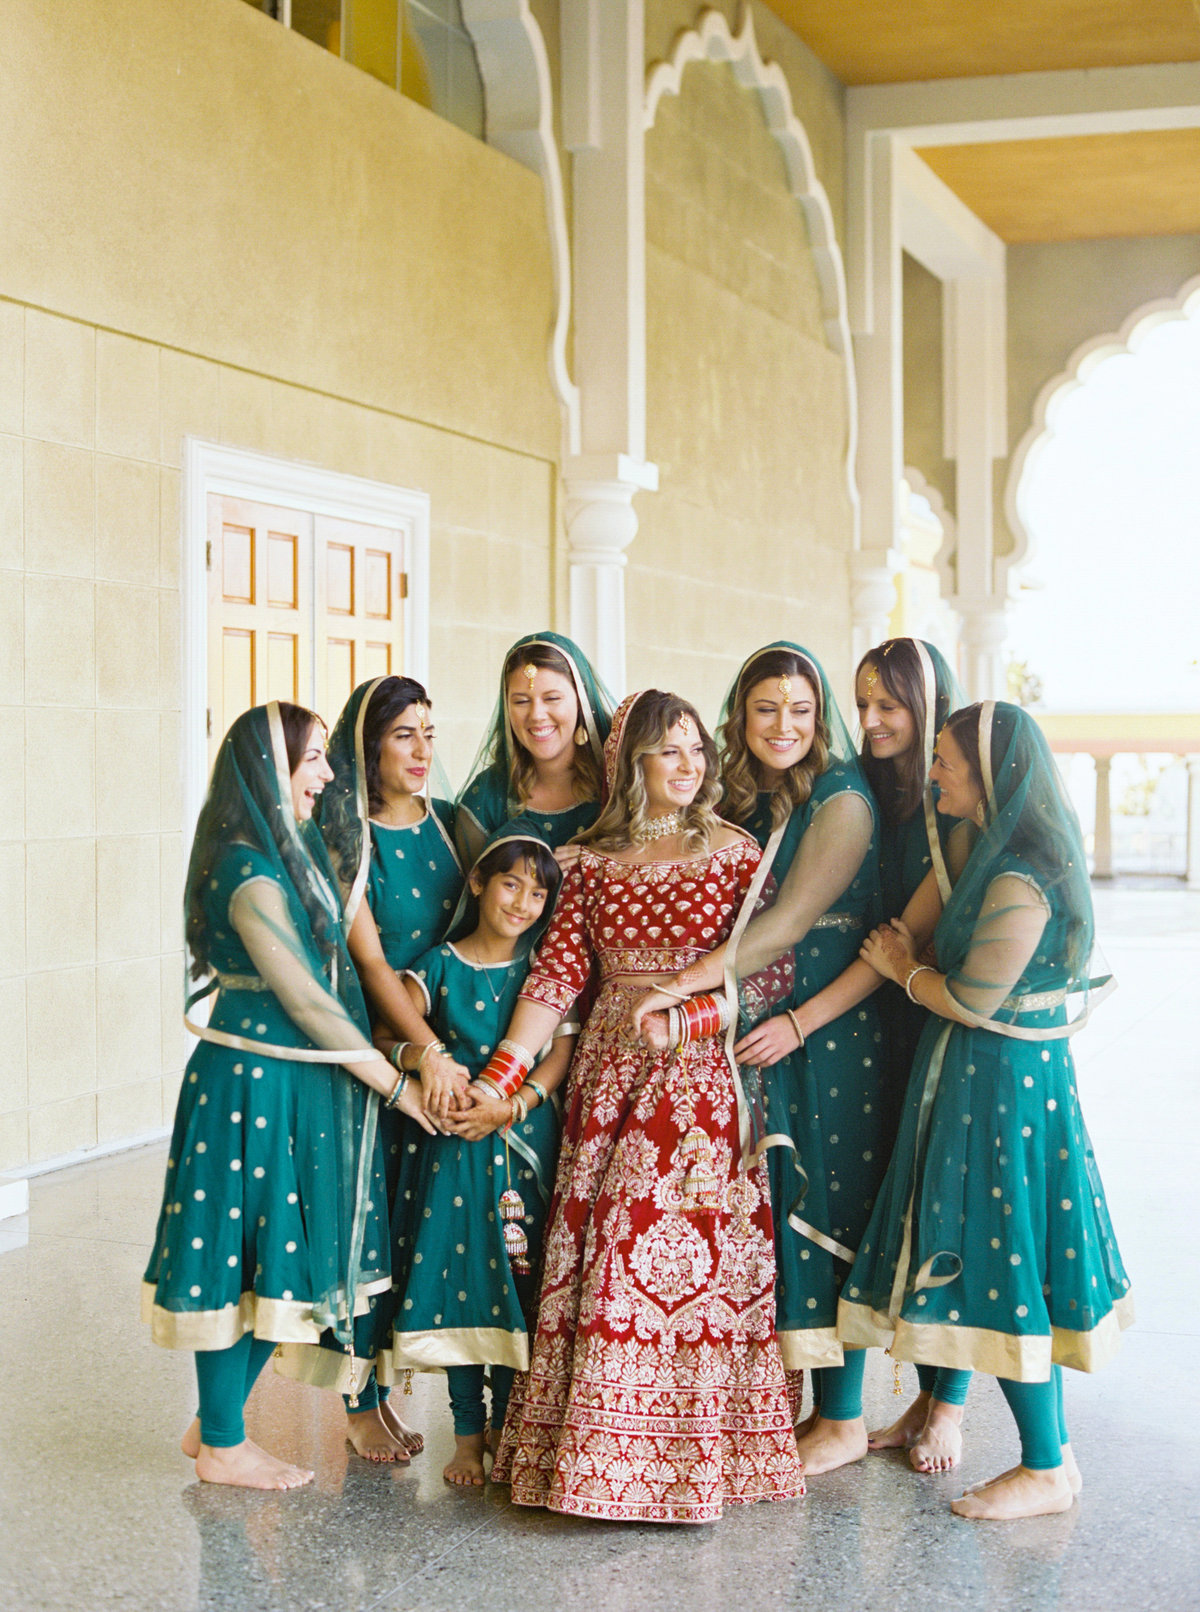 Kristina + Harminder San Jose Sikh Gurdwara Sahib Casa Real Ruby Hill Winery Wedding - Cassie Valente Photography 0280